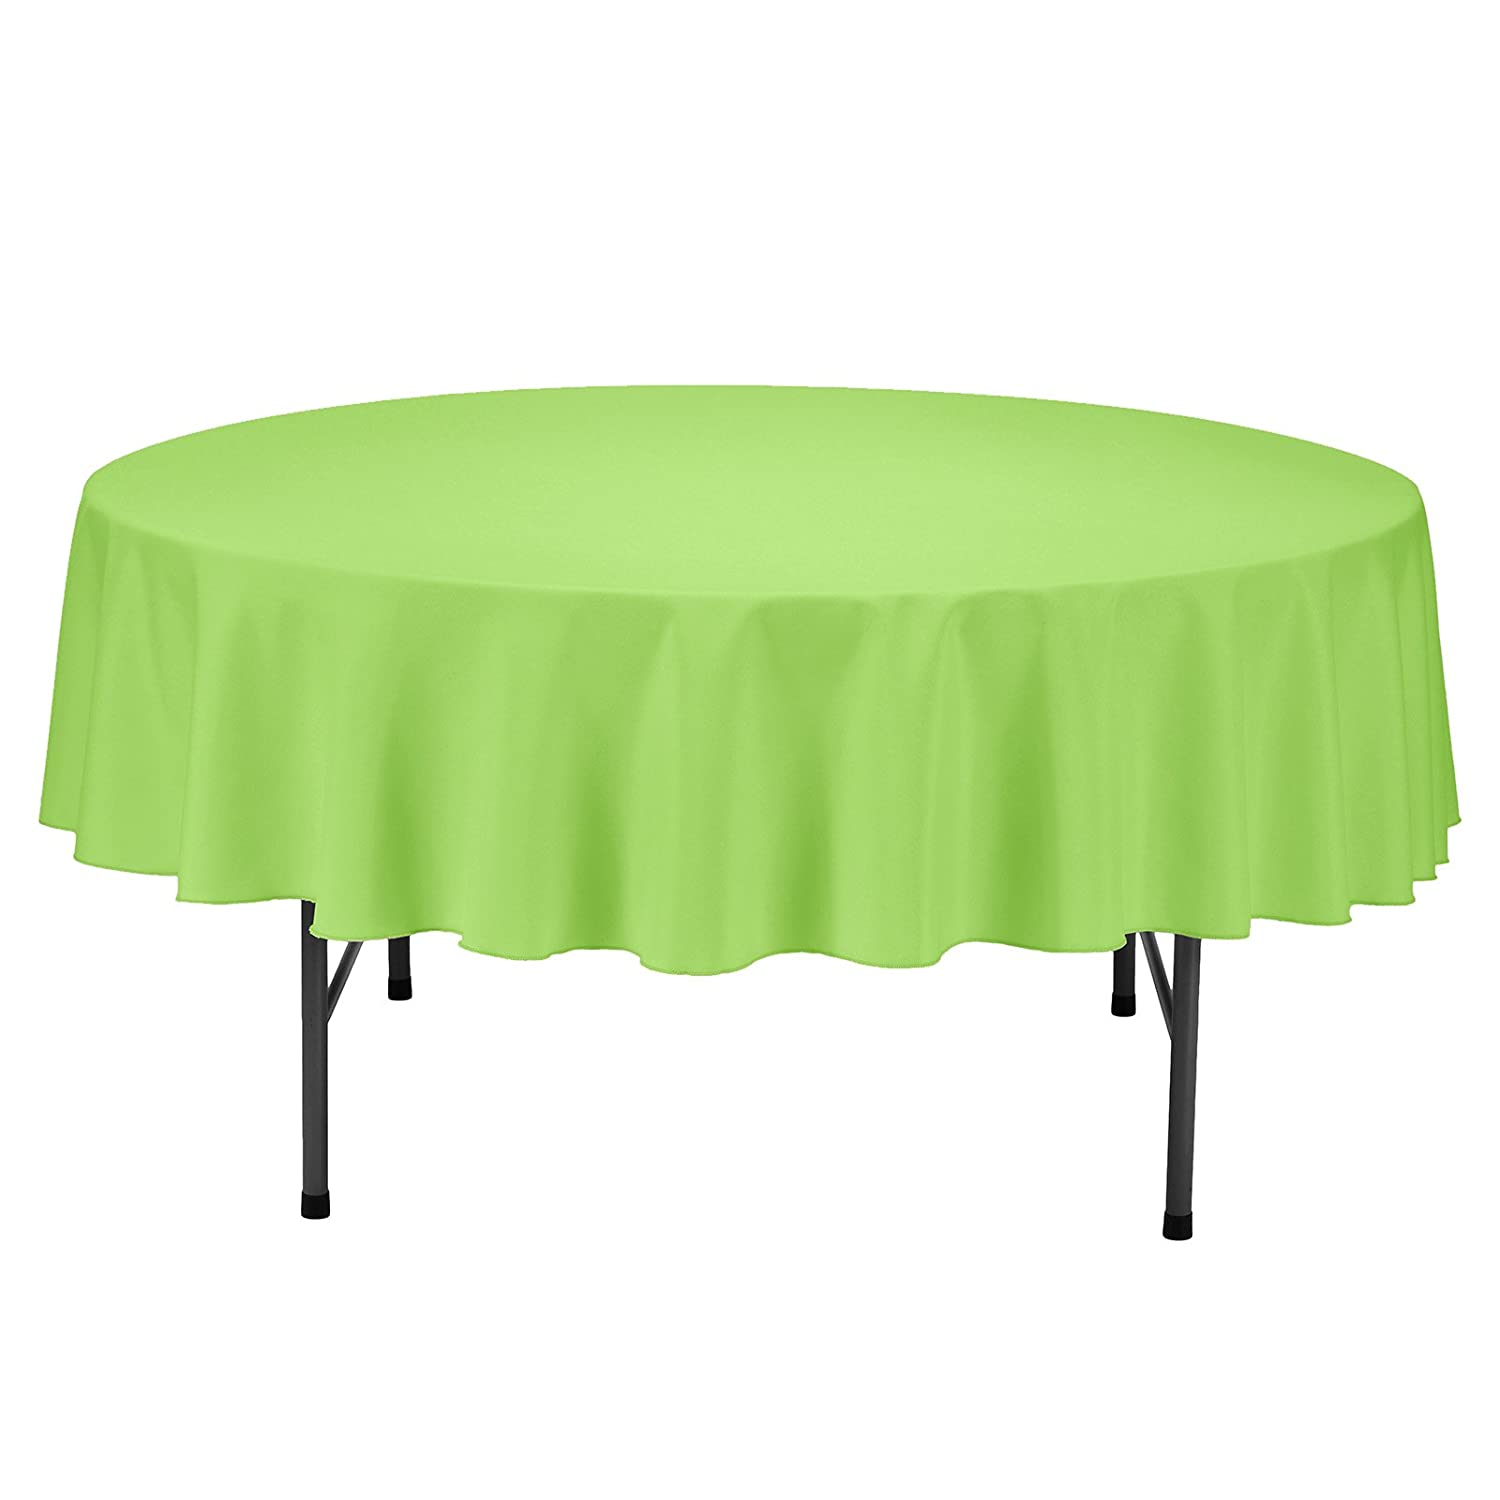 70 Inch Round Table Cloth.Remedios Round Tablecloth Solid Color Polyester Table Cloth For Bridal Shower Wedding Table Wrinkle Free Dinner Tablecloth For Restaurant Party